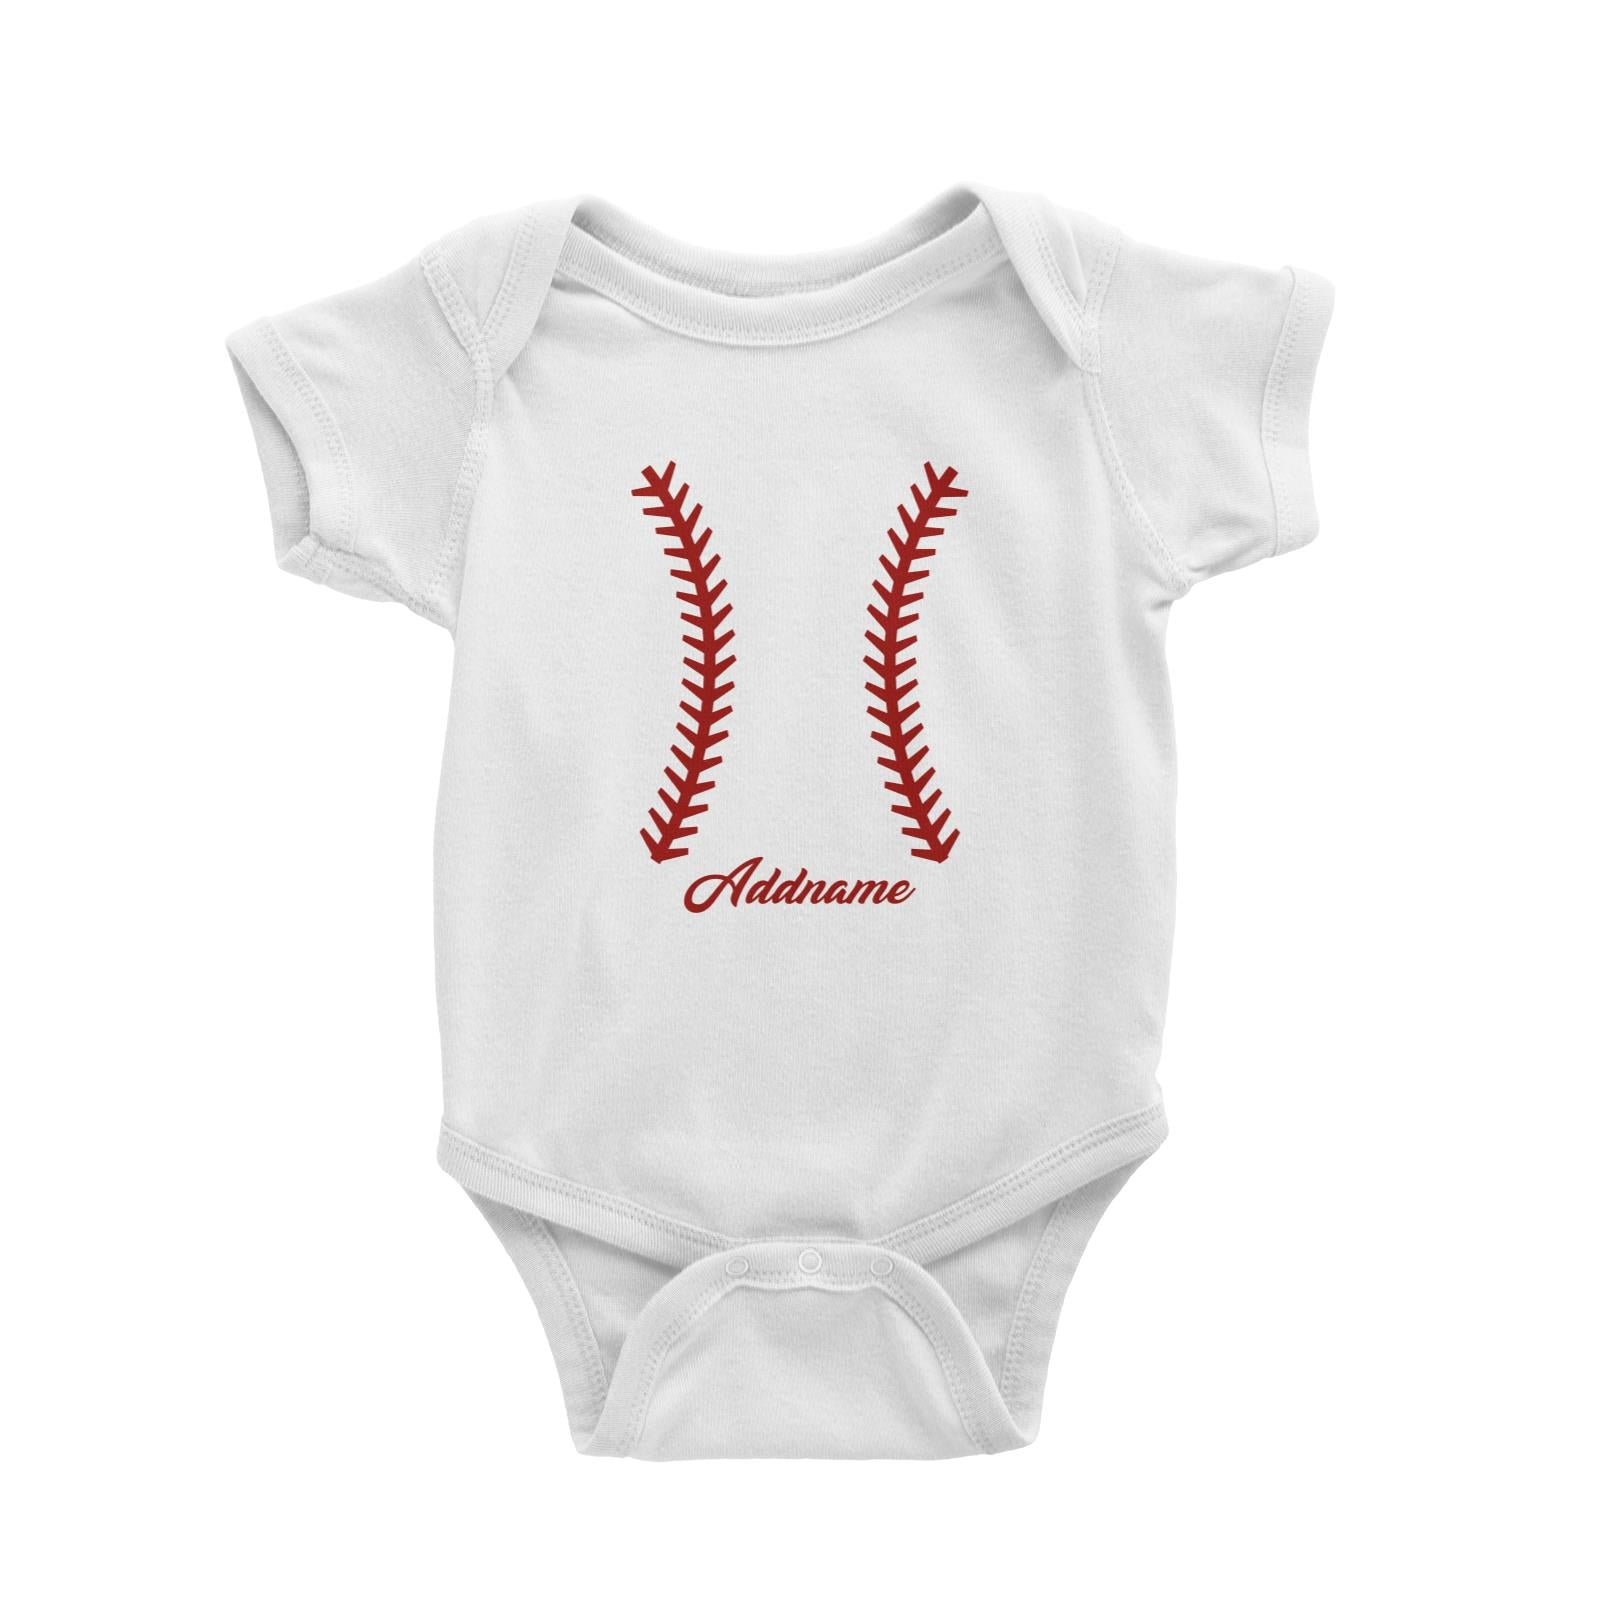 Baseball Team Stitch Baby Romper